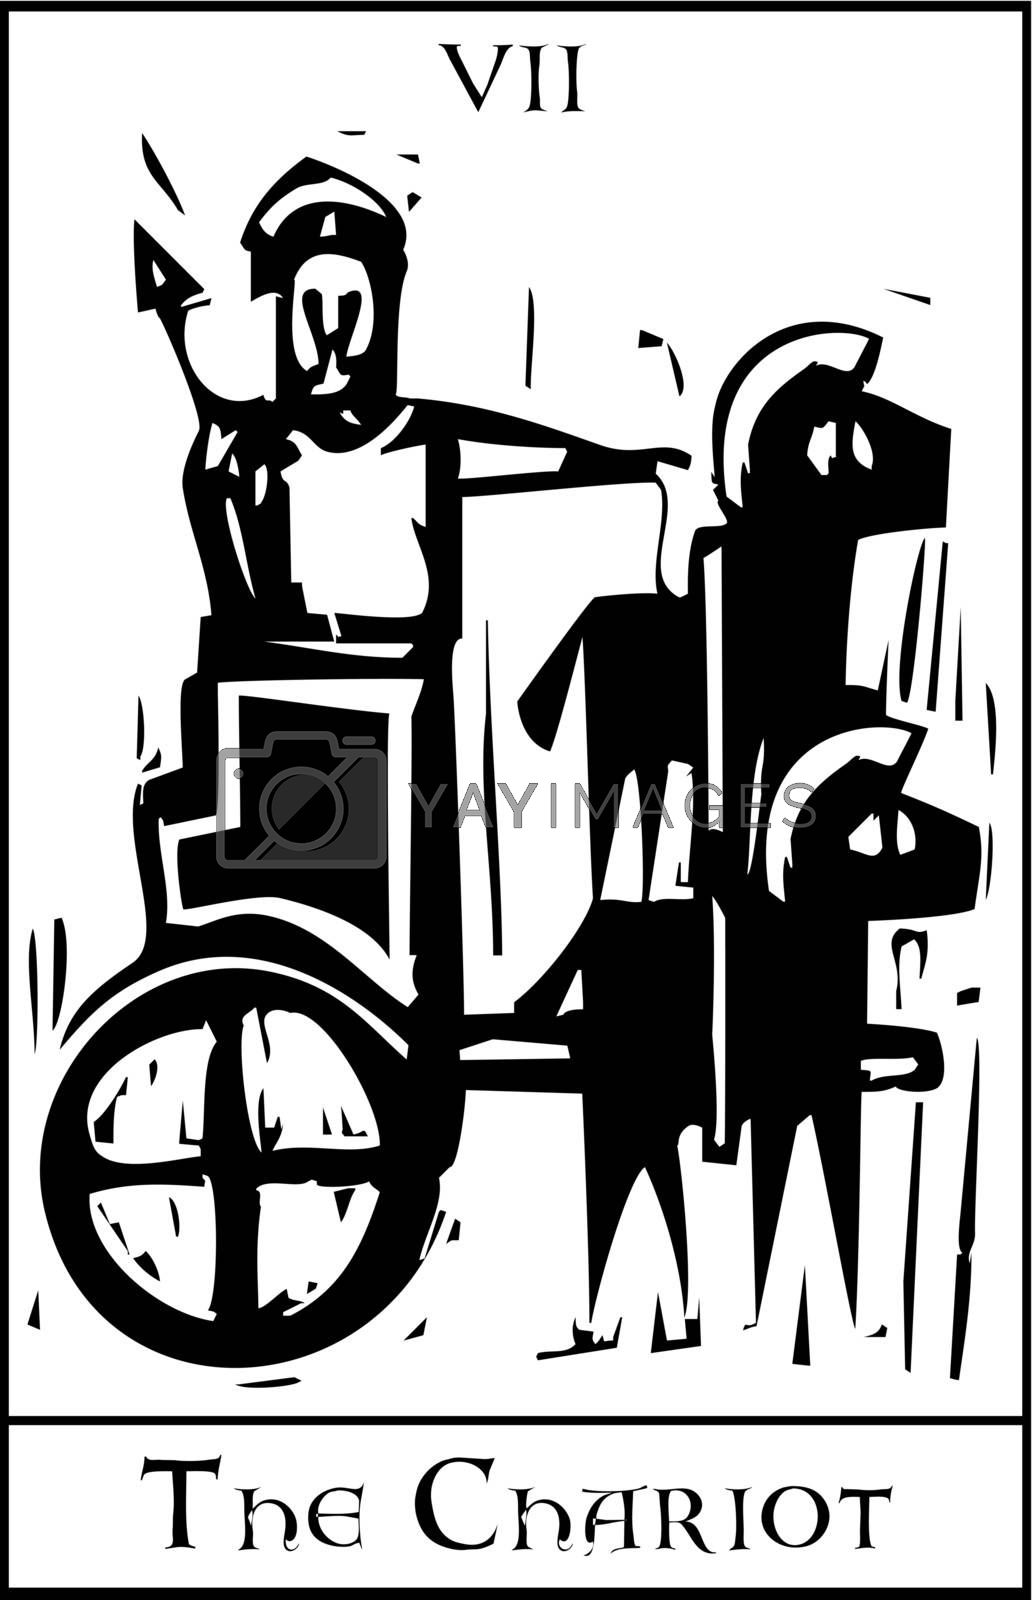 Woodcut expressionist style image for the Tarot card of the Chariot.